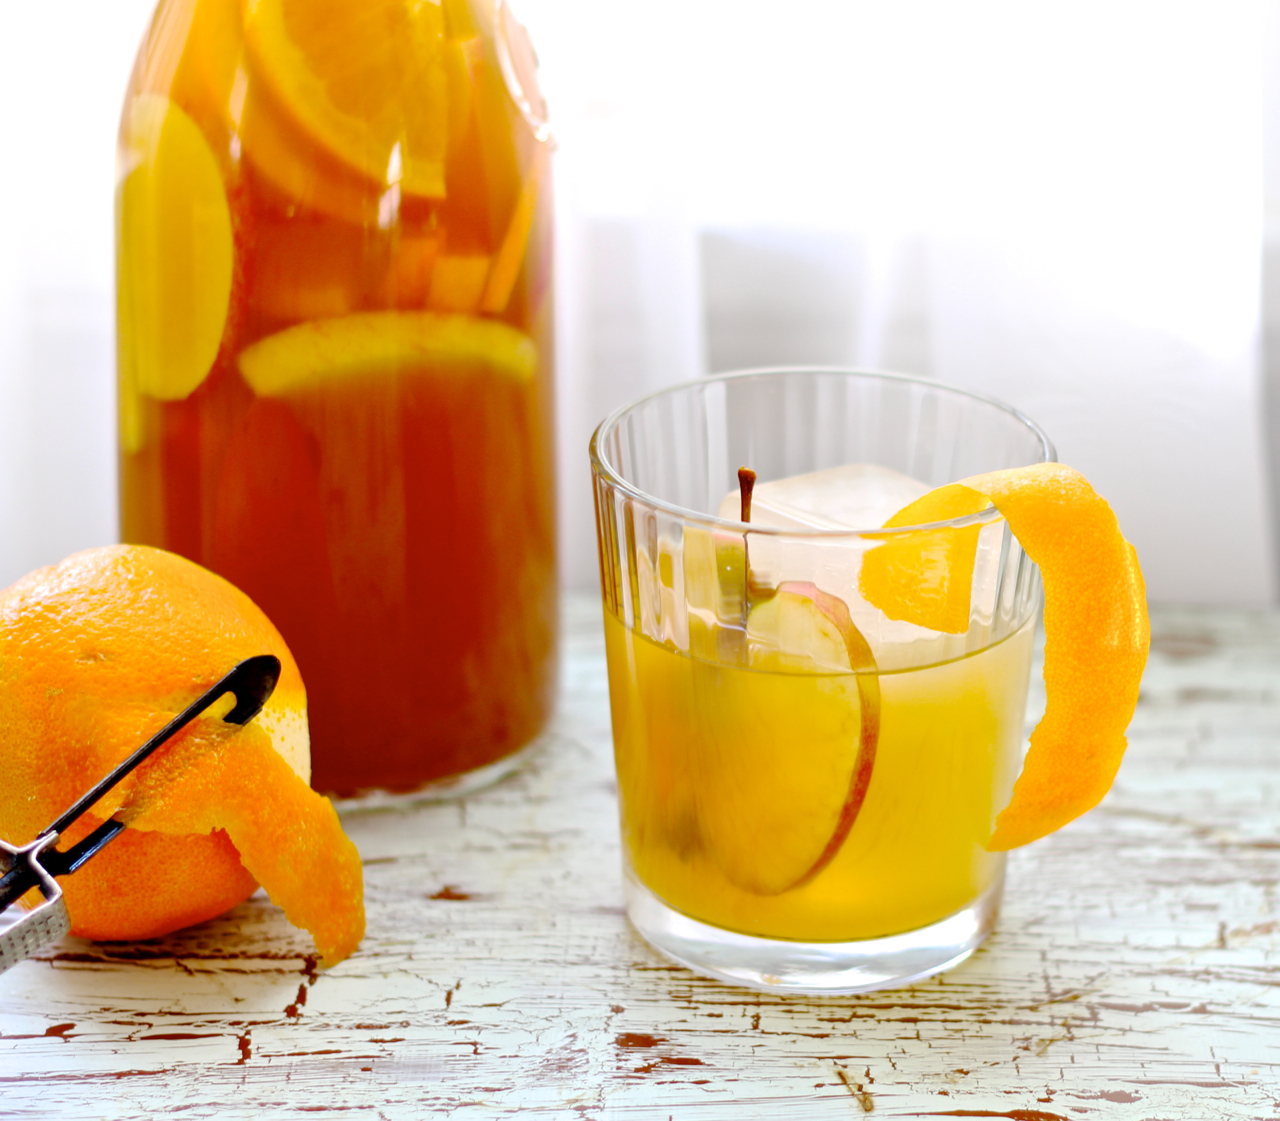 apples and oranges cocktail